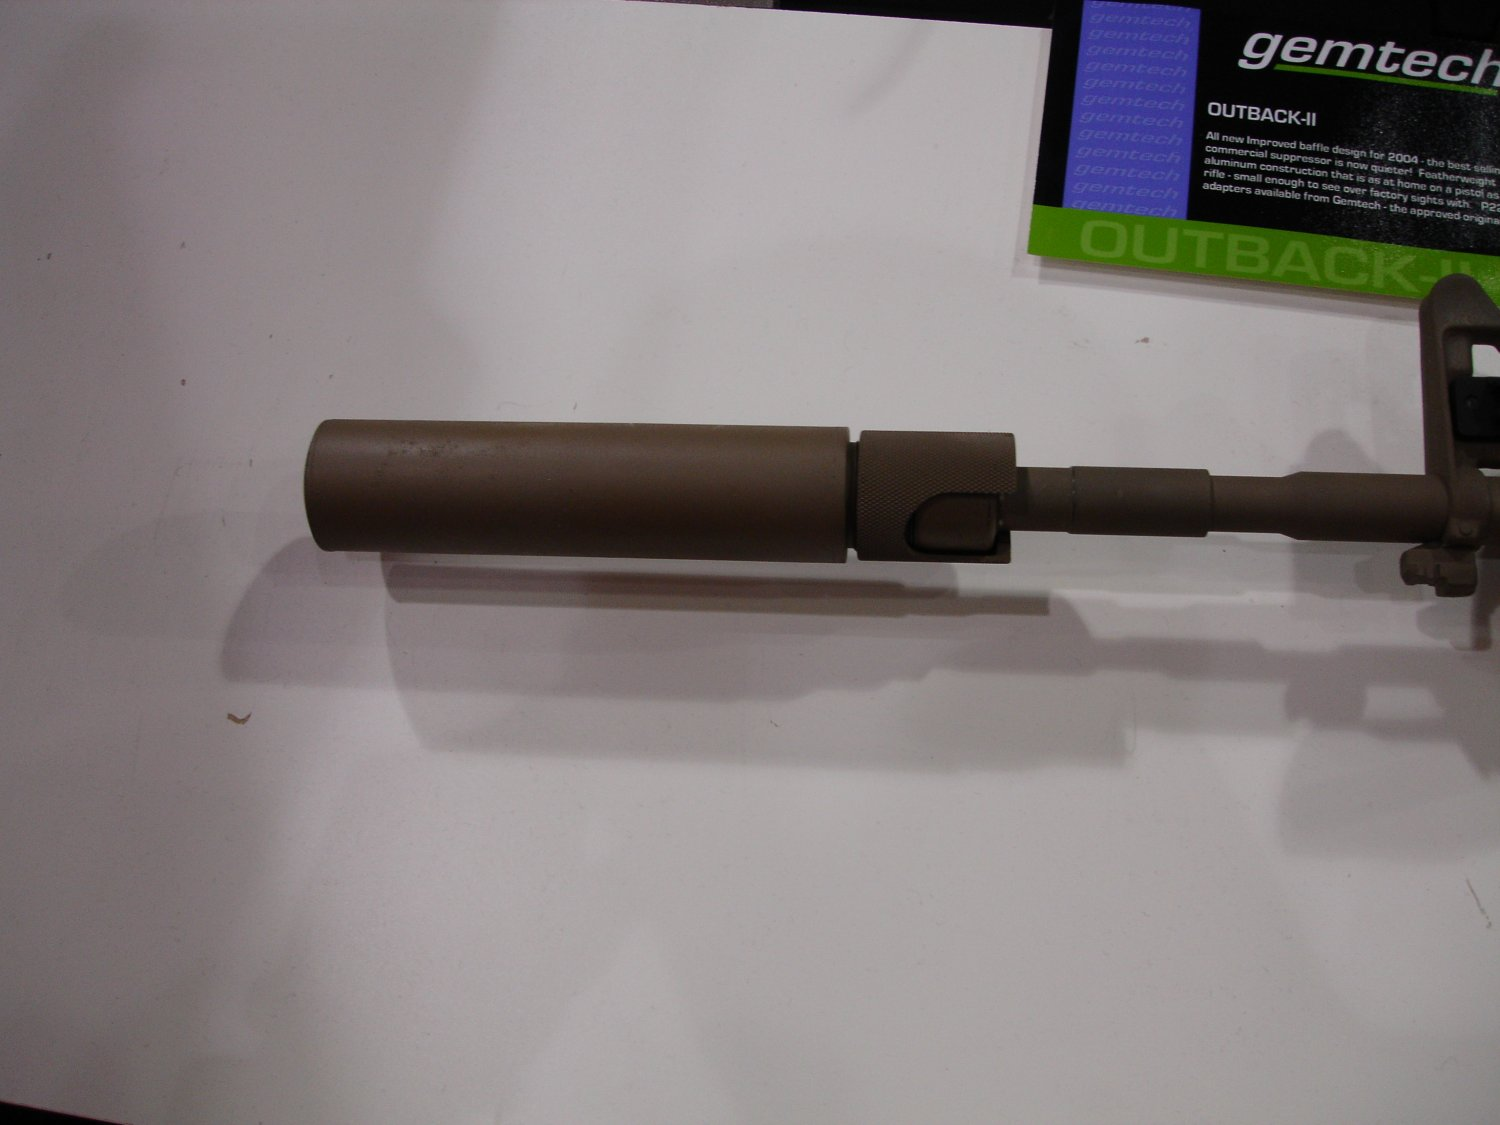 Gemtech 2 <!  :en  >SHOT Show Pics: Gemtech Sound and Signature Suppressors for Tactical Small Arms<!  :  >